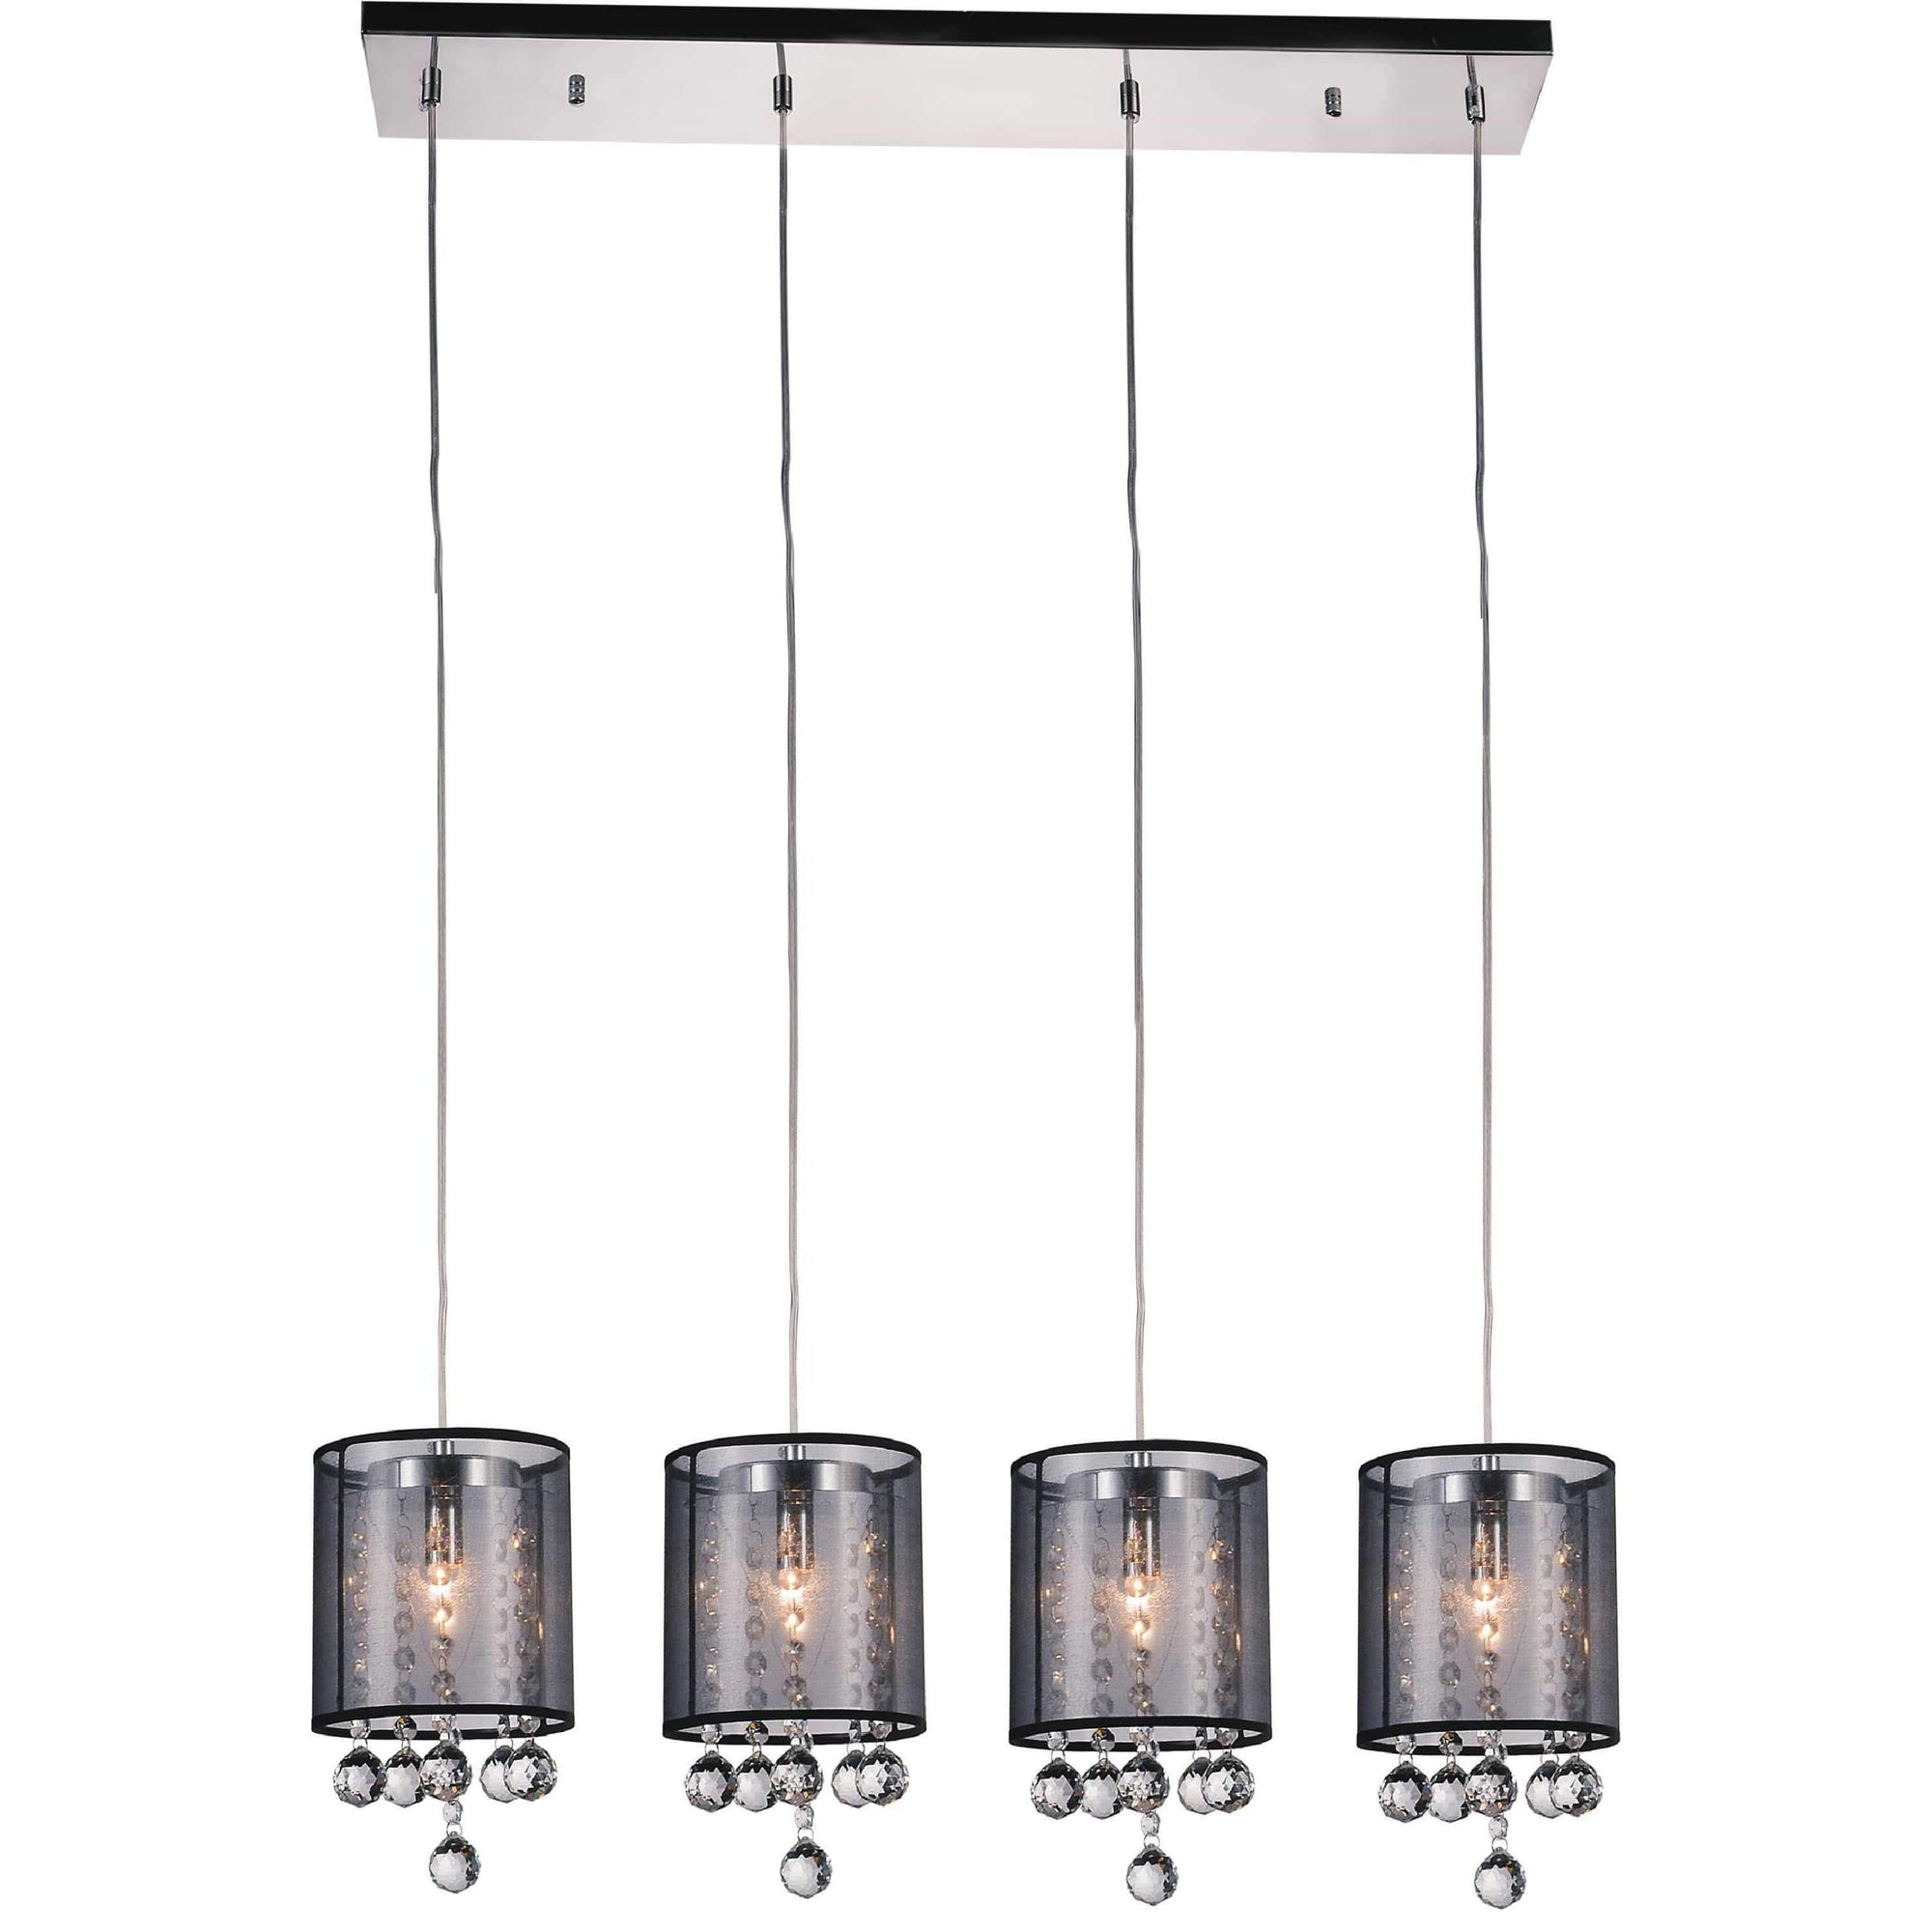 CWI Lighting Pendants Chrome / K9 Smoke Radiant 4 Light Multi Light Pendant with Chrome finish by CWI Lighting 5062P33C-4 (Smoke + B)